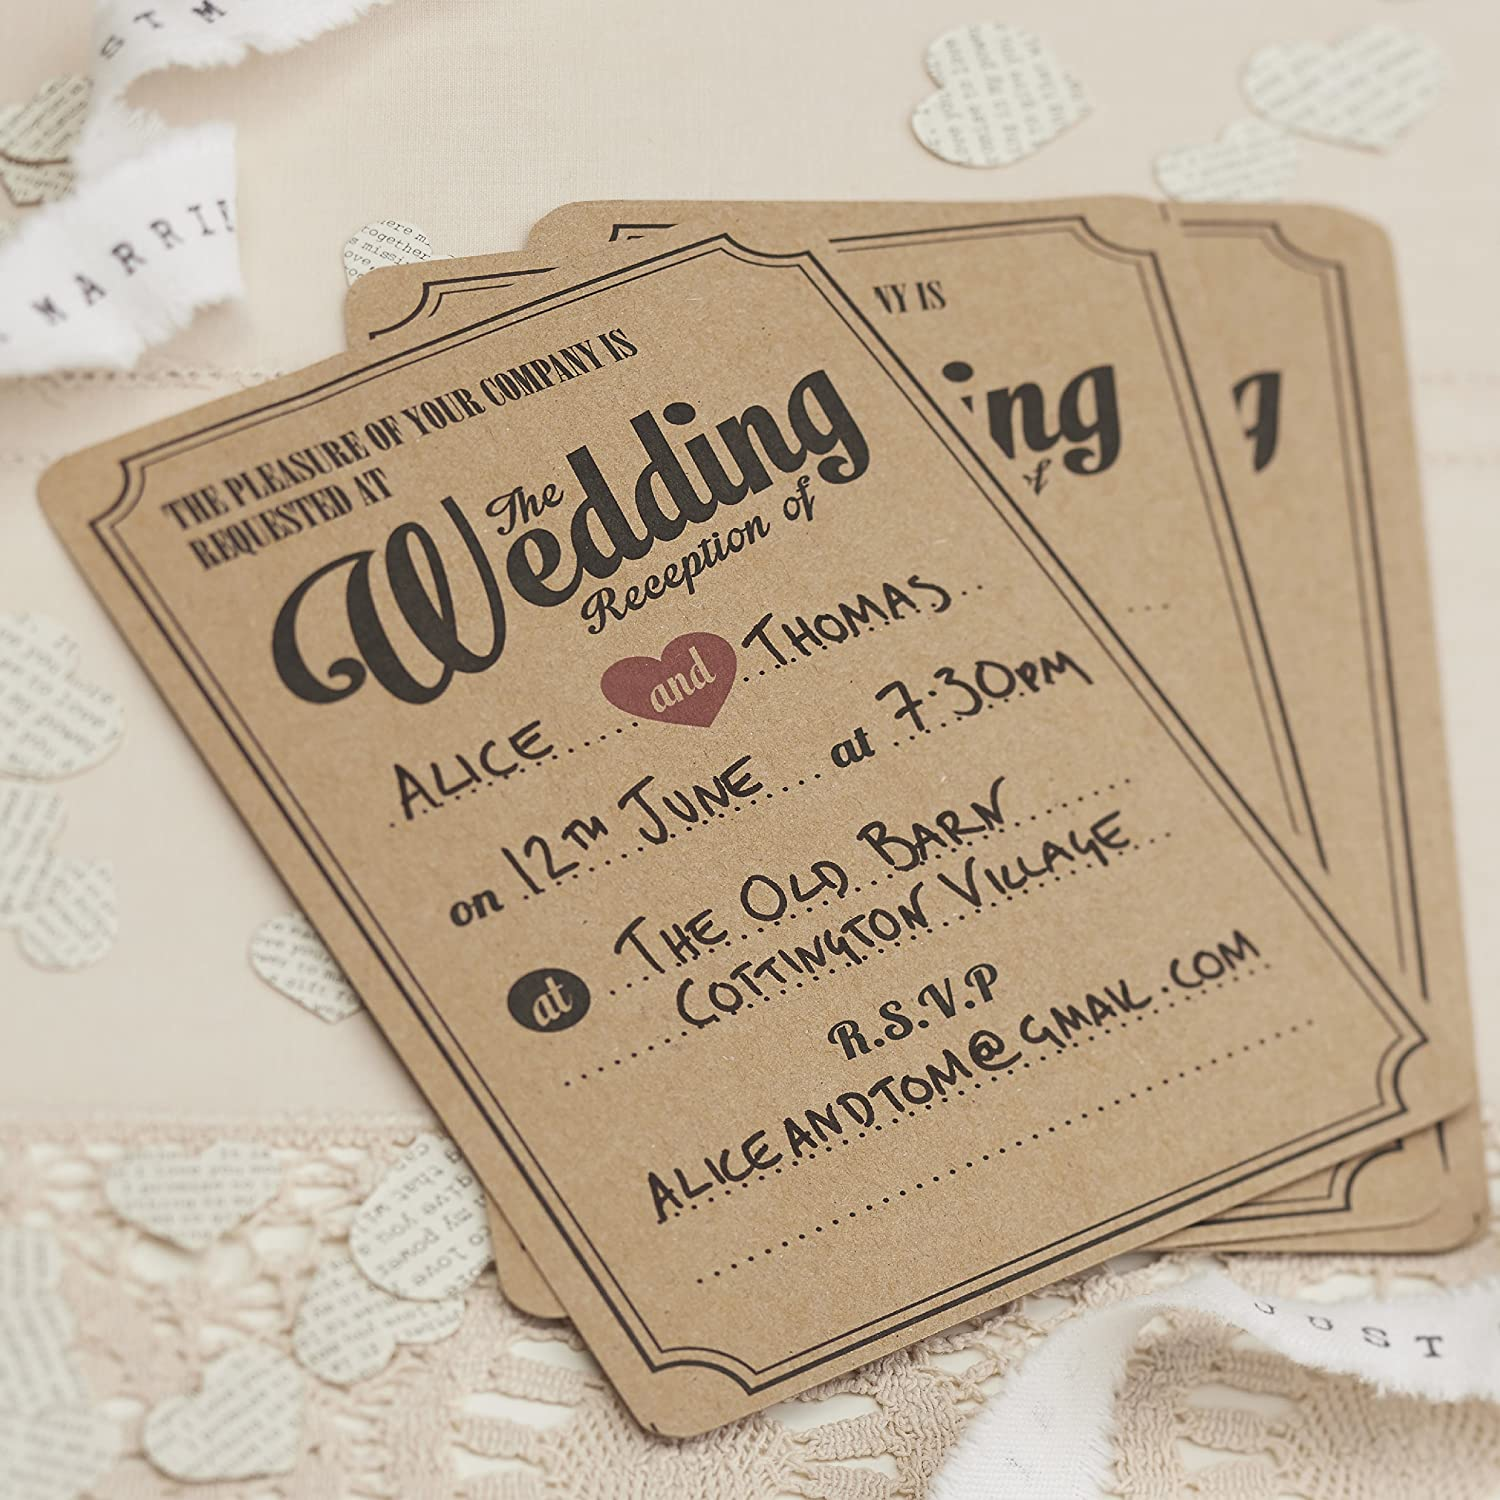 ginger ray evening wedding reception brown kraft wedding invitations x 10 vintage affair amazoncouk kitchen home - Wedding Invitations Vintage